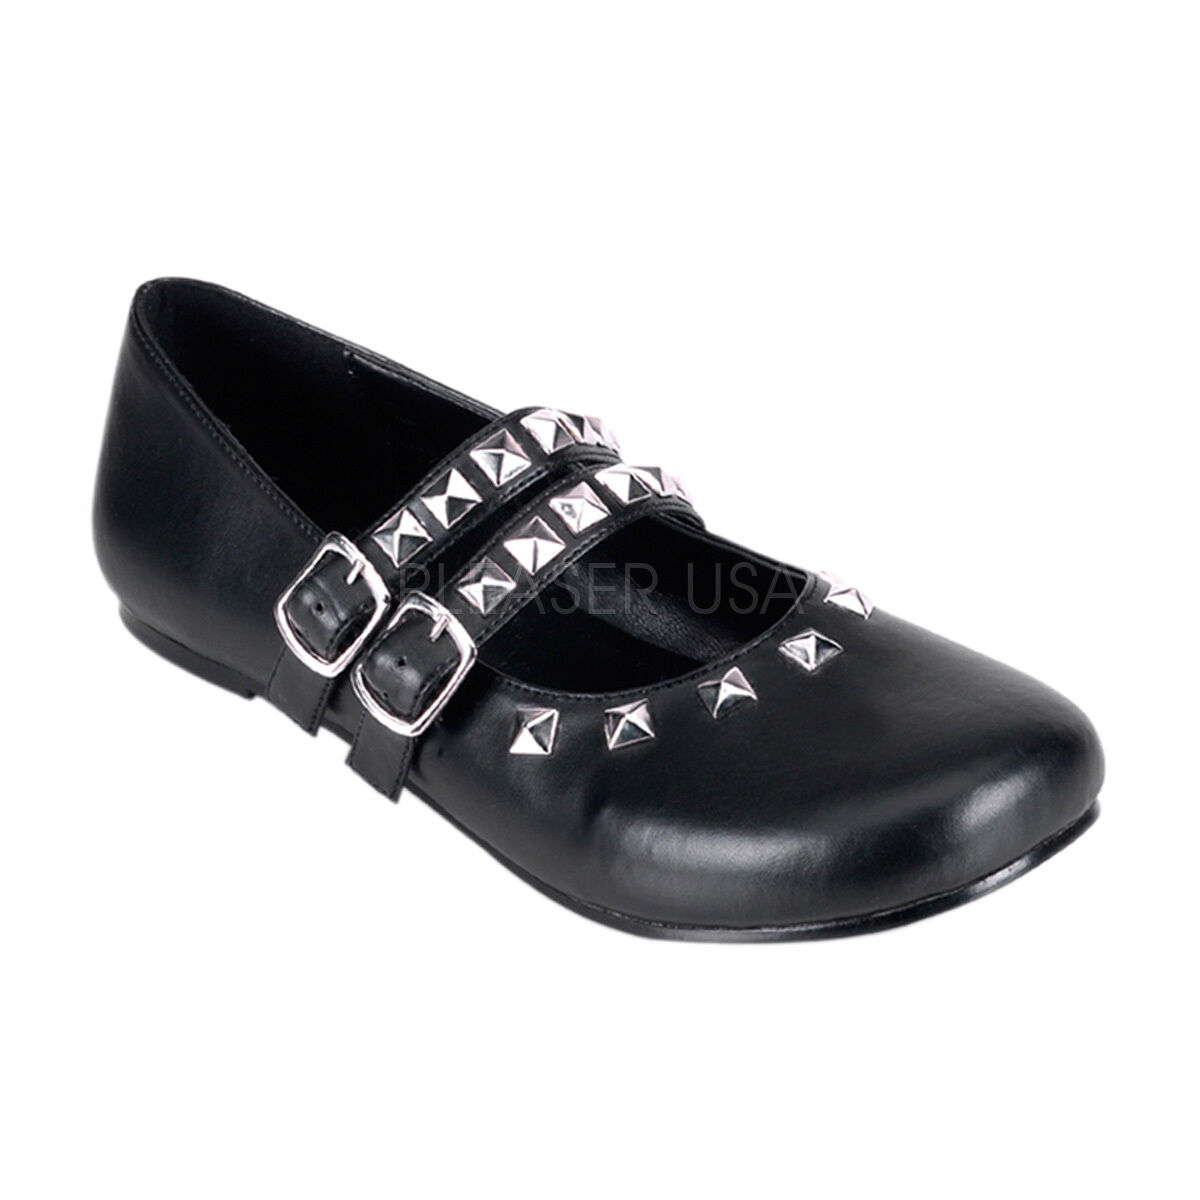 Demonia Daisy 13 Ladies shoes Ballet Flat 2 Buckle Strap Studded Silver Black